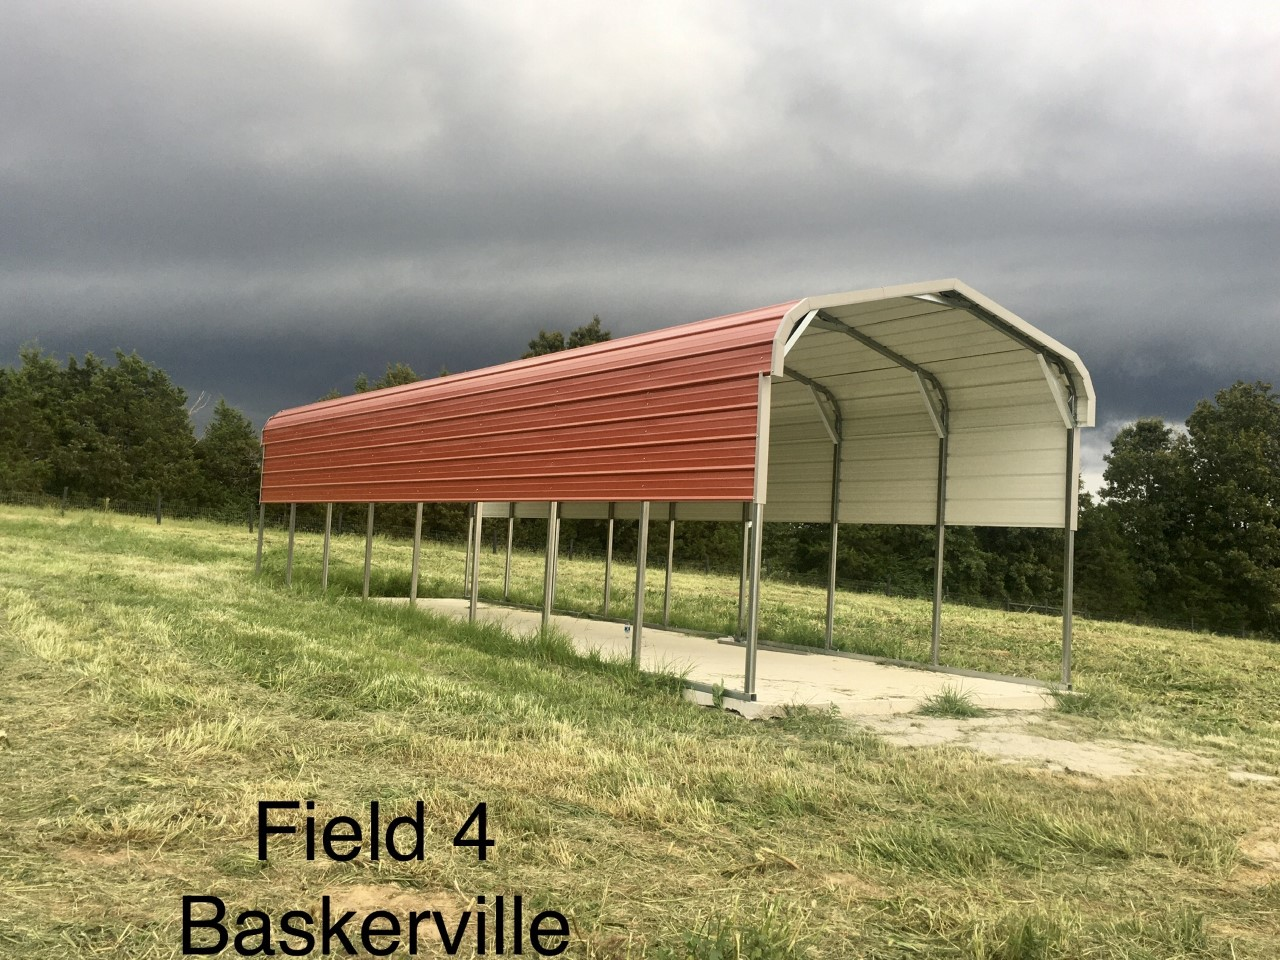 Carport pig shelter installed at Simply Grazin' Baskerville, VA field 4